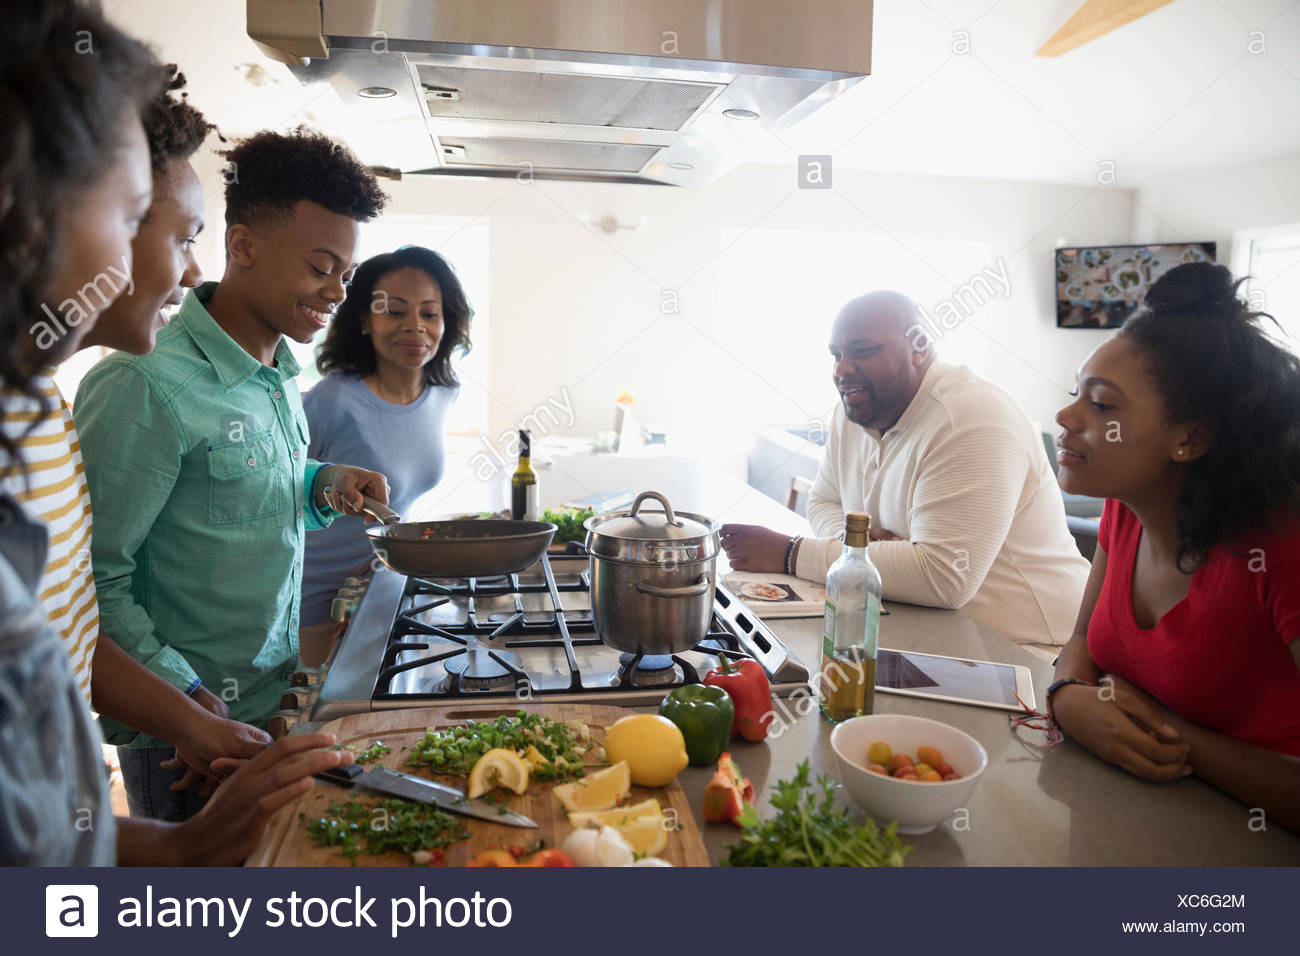 African American family cooking in kitchen Photo Stock